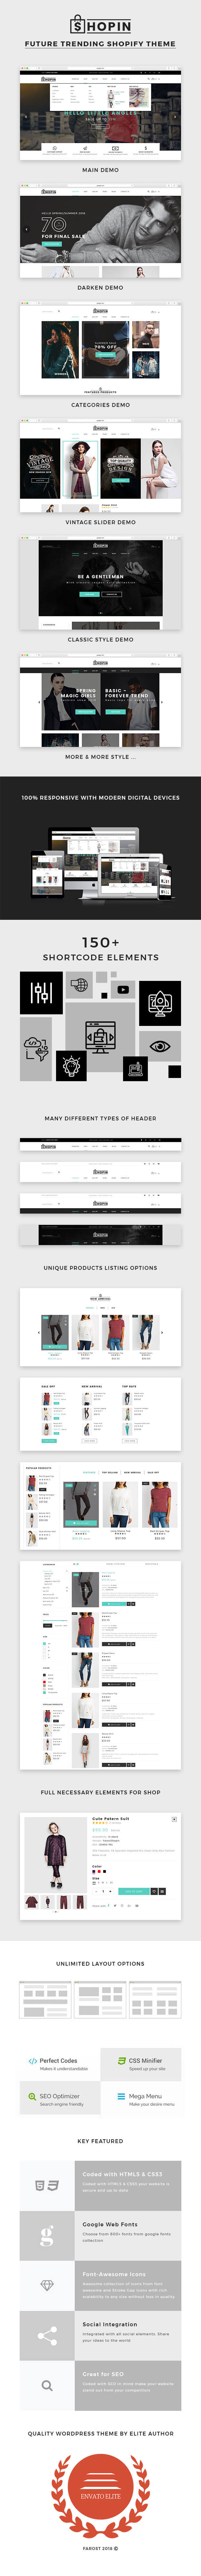 Shopin - Mutilpurpose eCommerce Shopify Theme